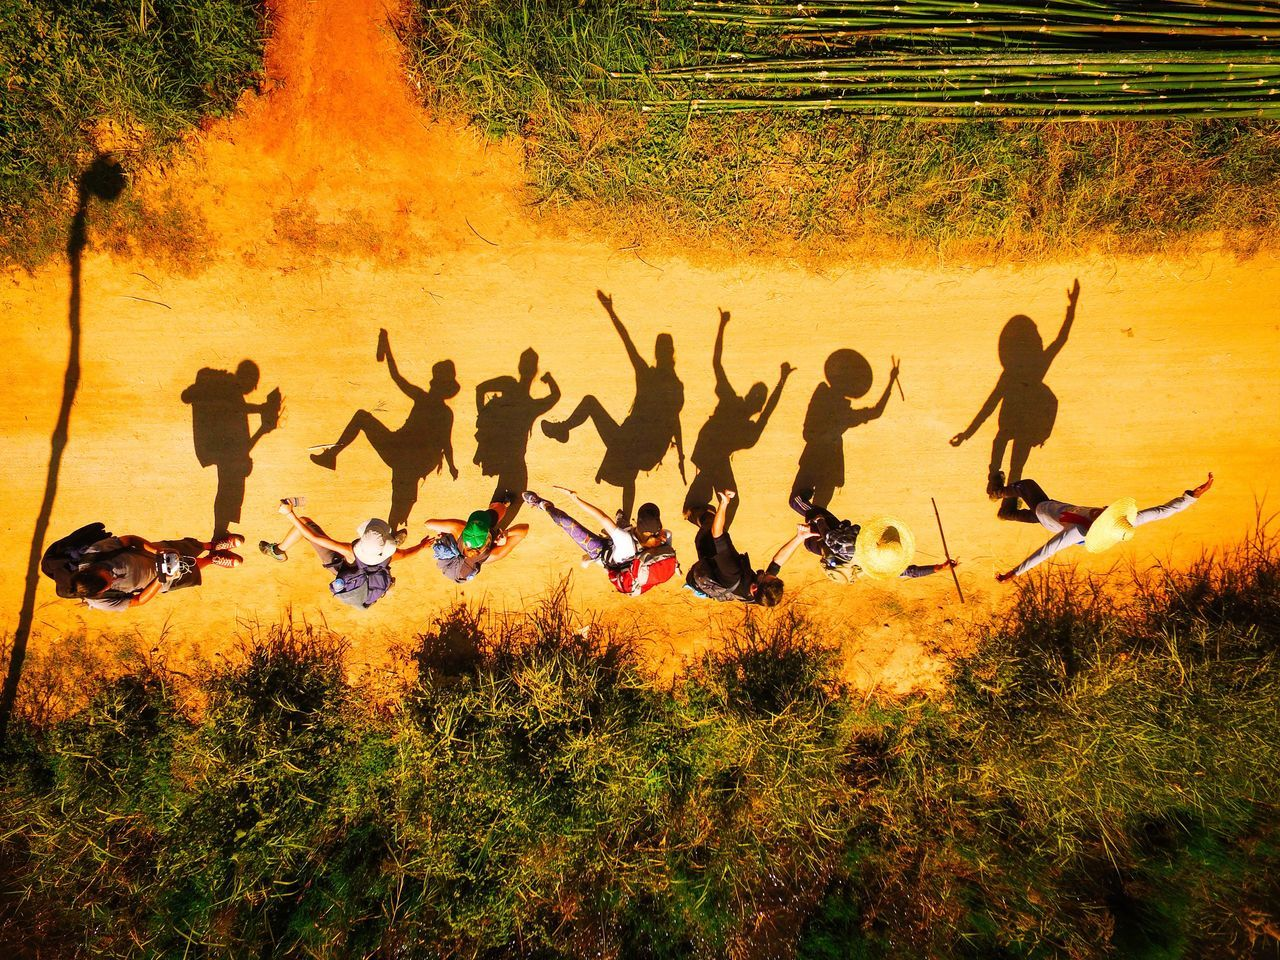 Time for fun after our 3 day hike from Kalaw to Inle Lake. ASIA Bestoftheday Birds Eye View Drone  Drone Moments Drone Photography Dronephotography Drones Droneshot From Above  From My Point Of View Fun Funny Moments Funny Pics Hiking Hiking Adventures Hiking Trail Hikingadventures Large Group Of People Outdoor Photography Outdoors Party Party Time People Shadow